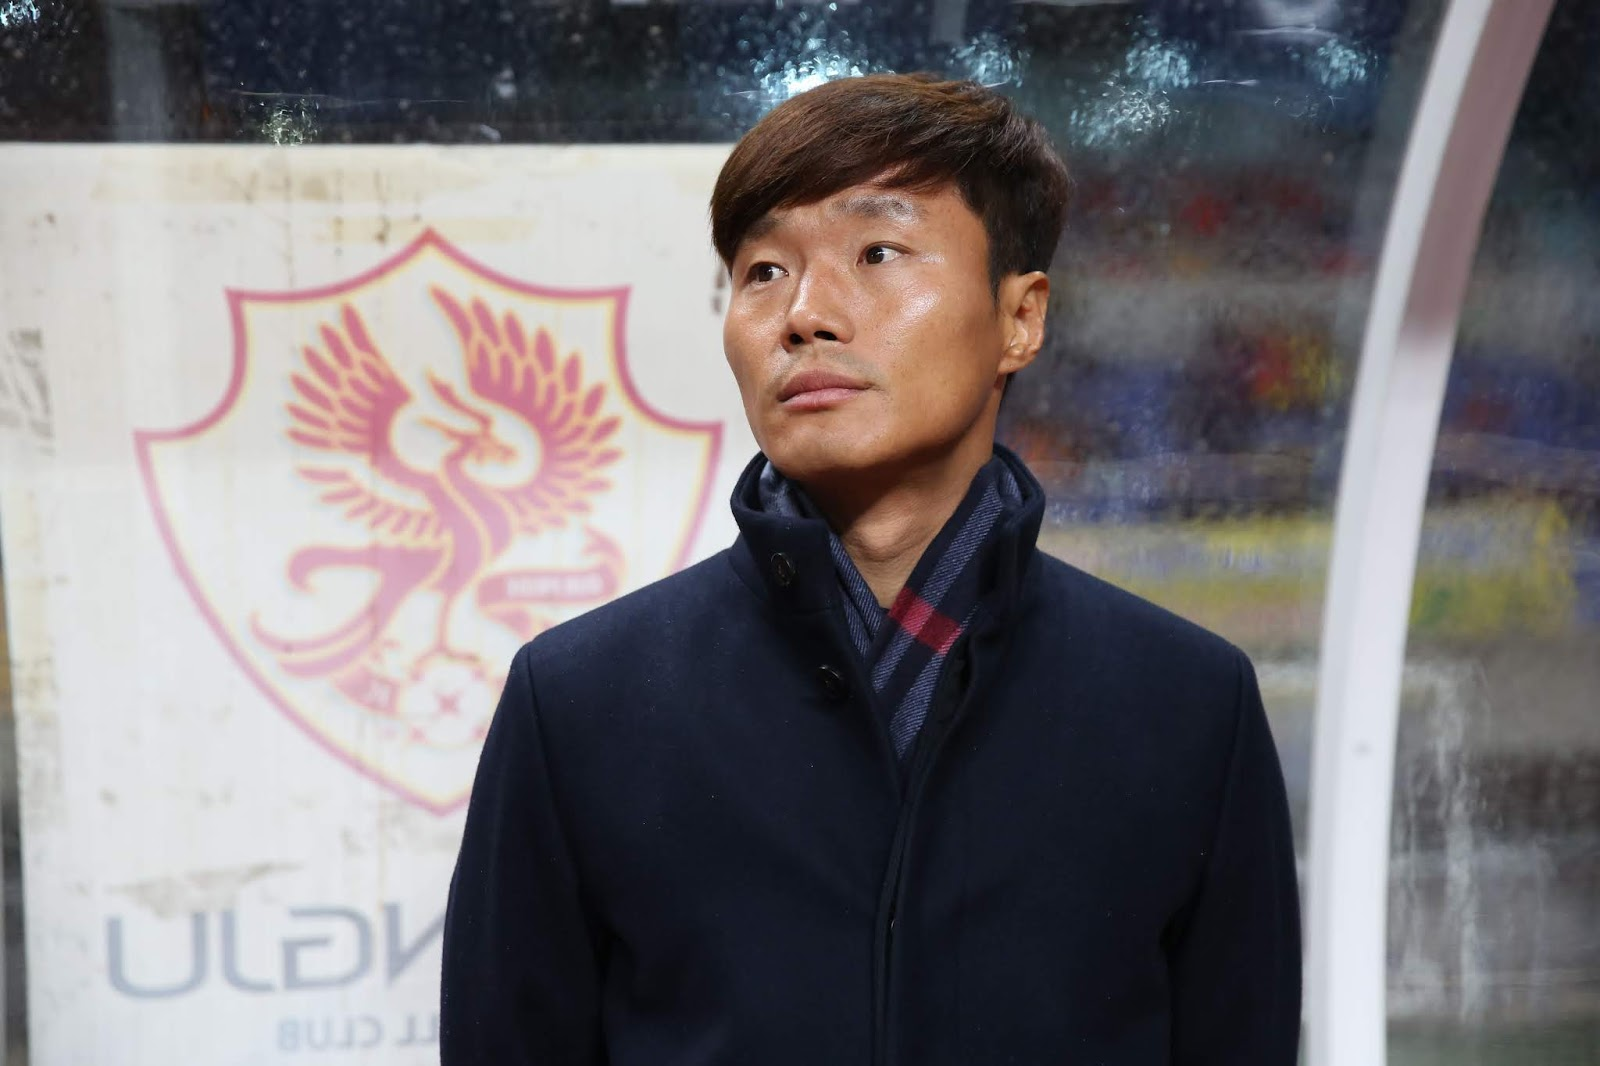 Nam Ki-il looks on as Gwangju FC won the first leg of the playoff final against Gyeongnam FC by a score of 3-1 on December 3rd, 2014.